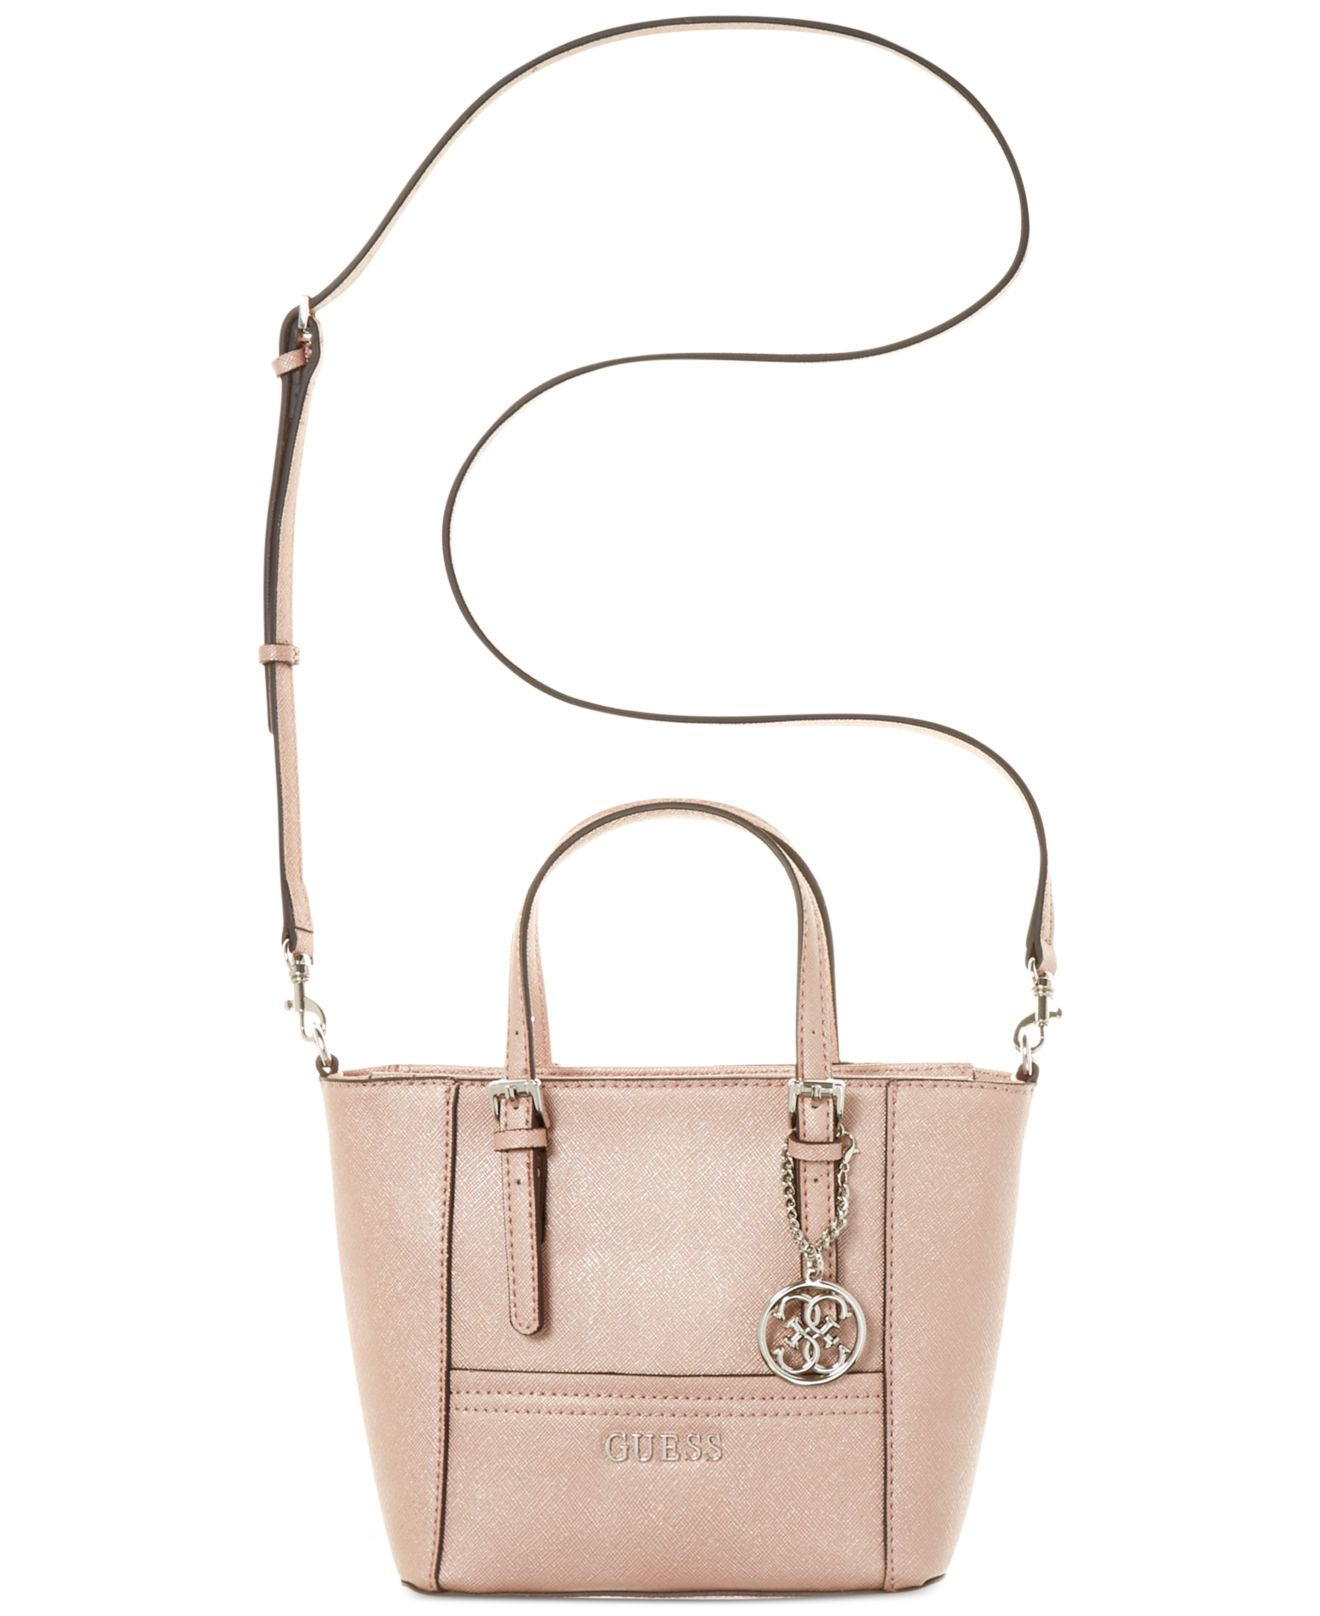 Lyst - Guess Delaney Petite Tote With Crossbody Strap in Pink 3e88facd087bc